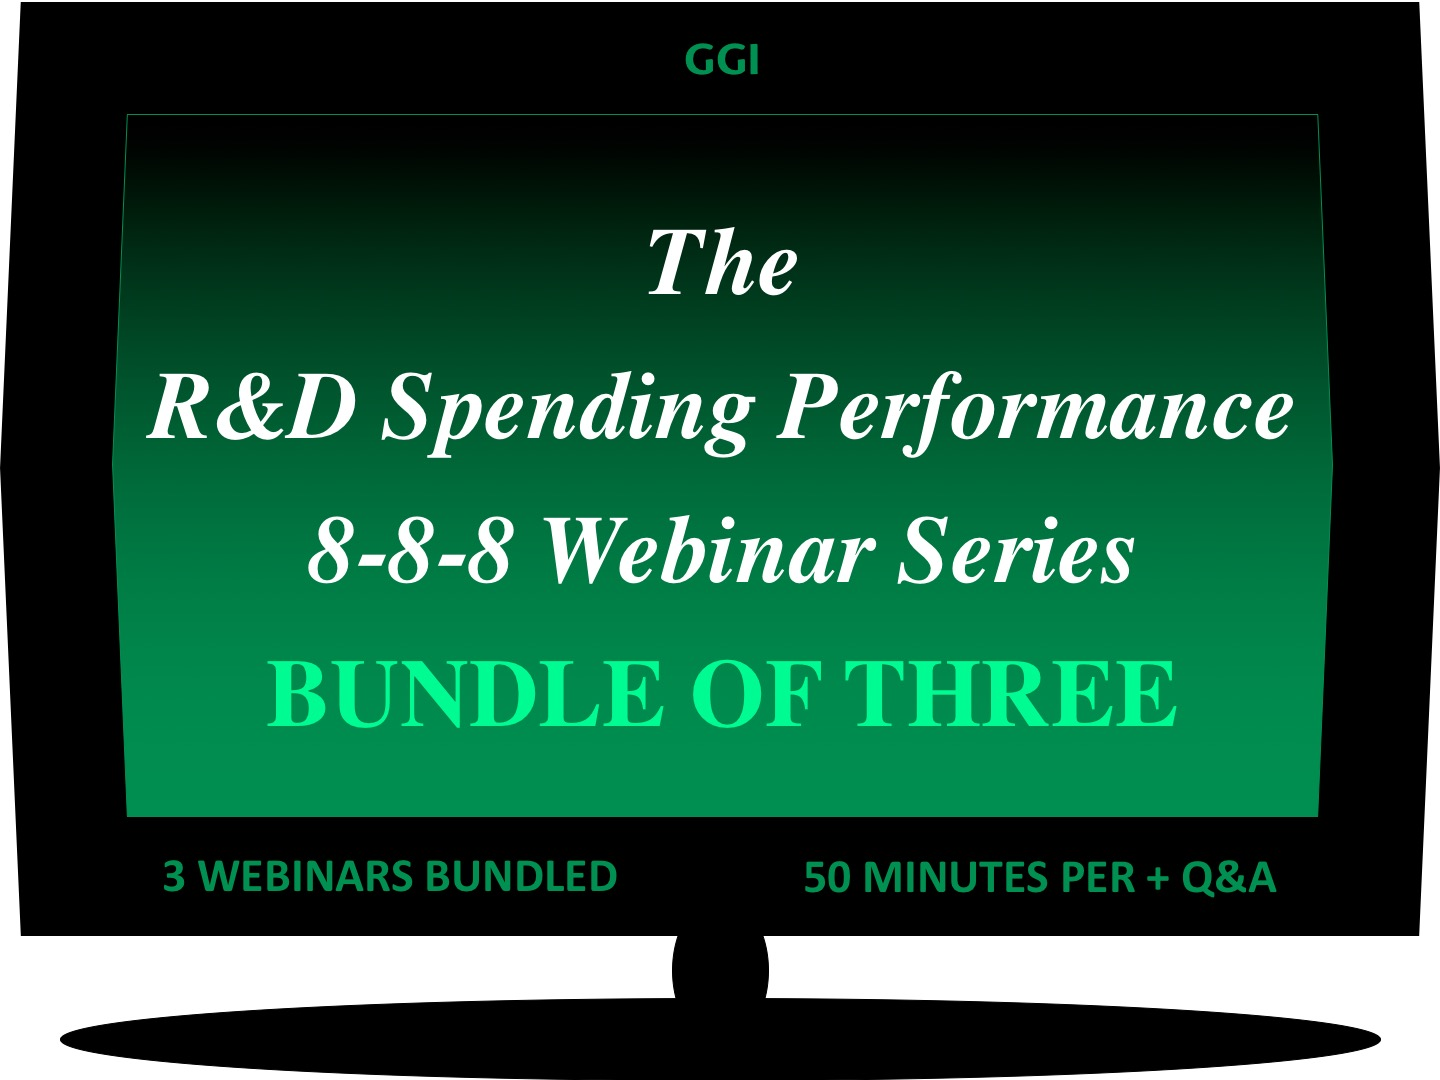 The R&D Spending Performance 8-8-8 Webinar Series